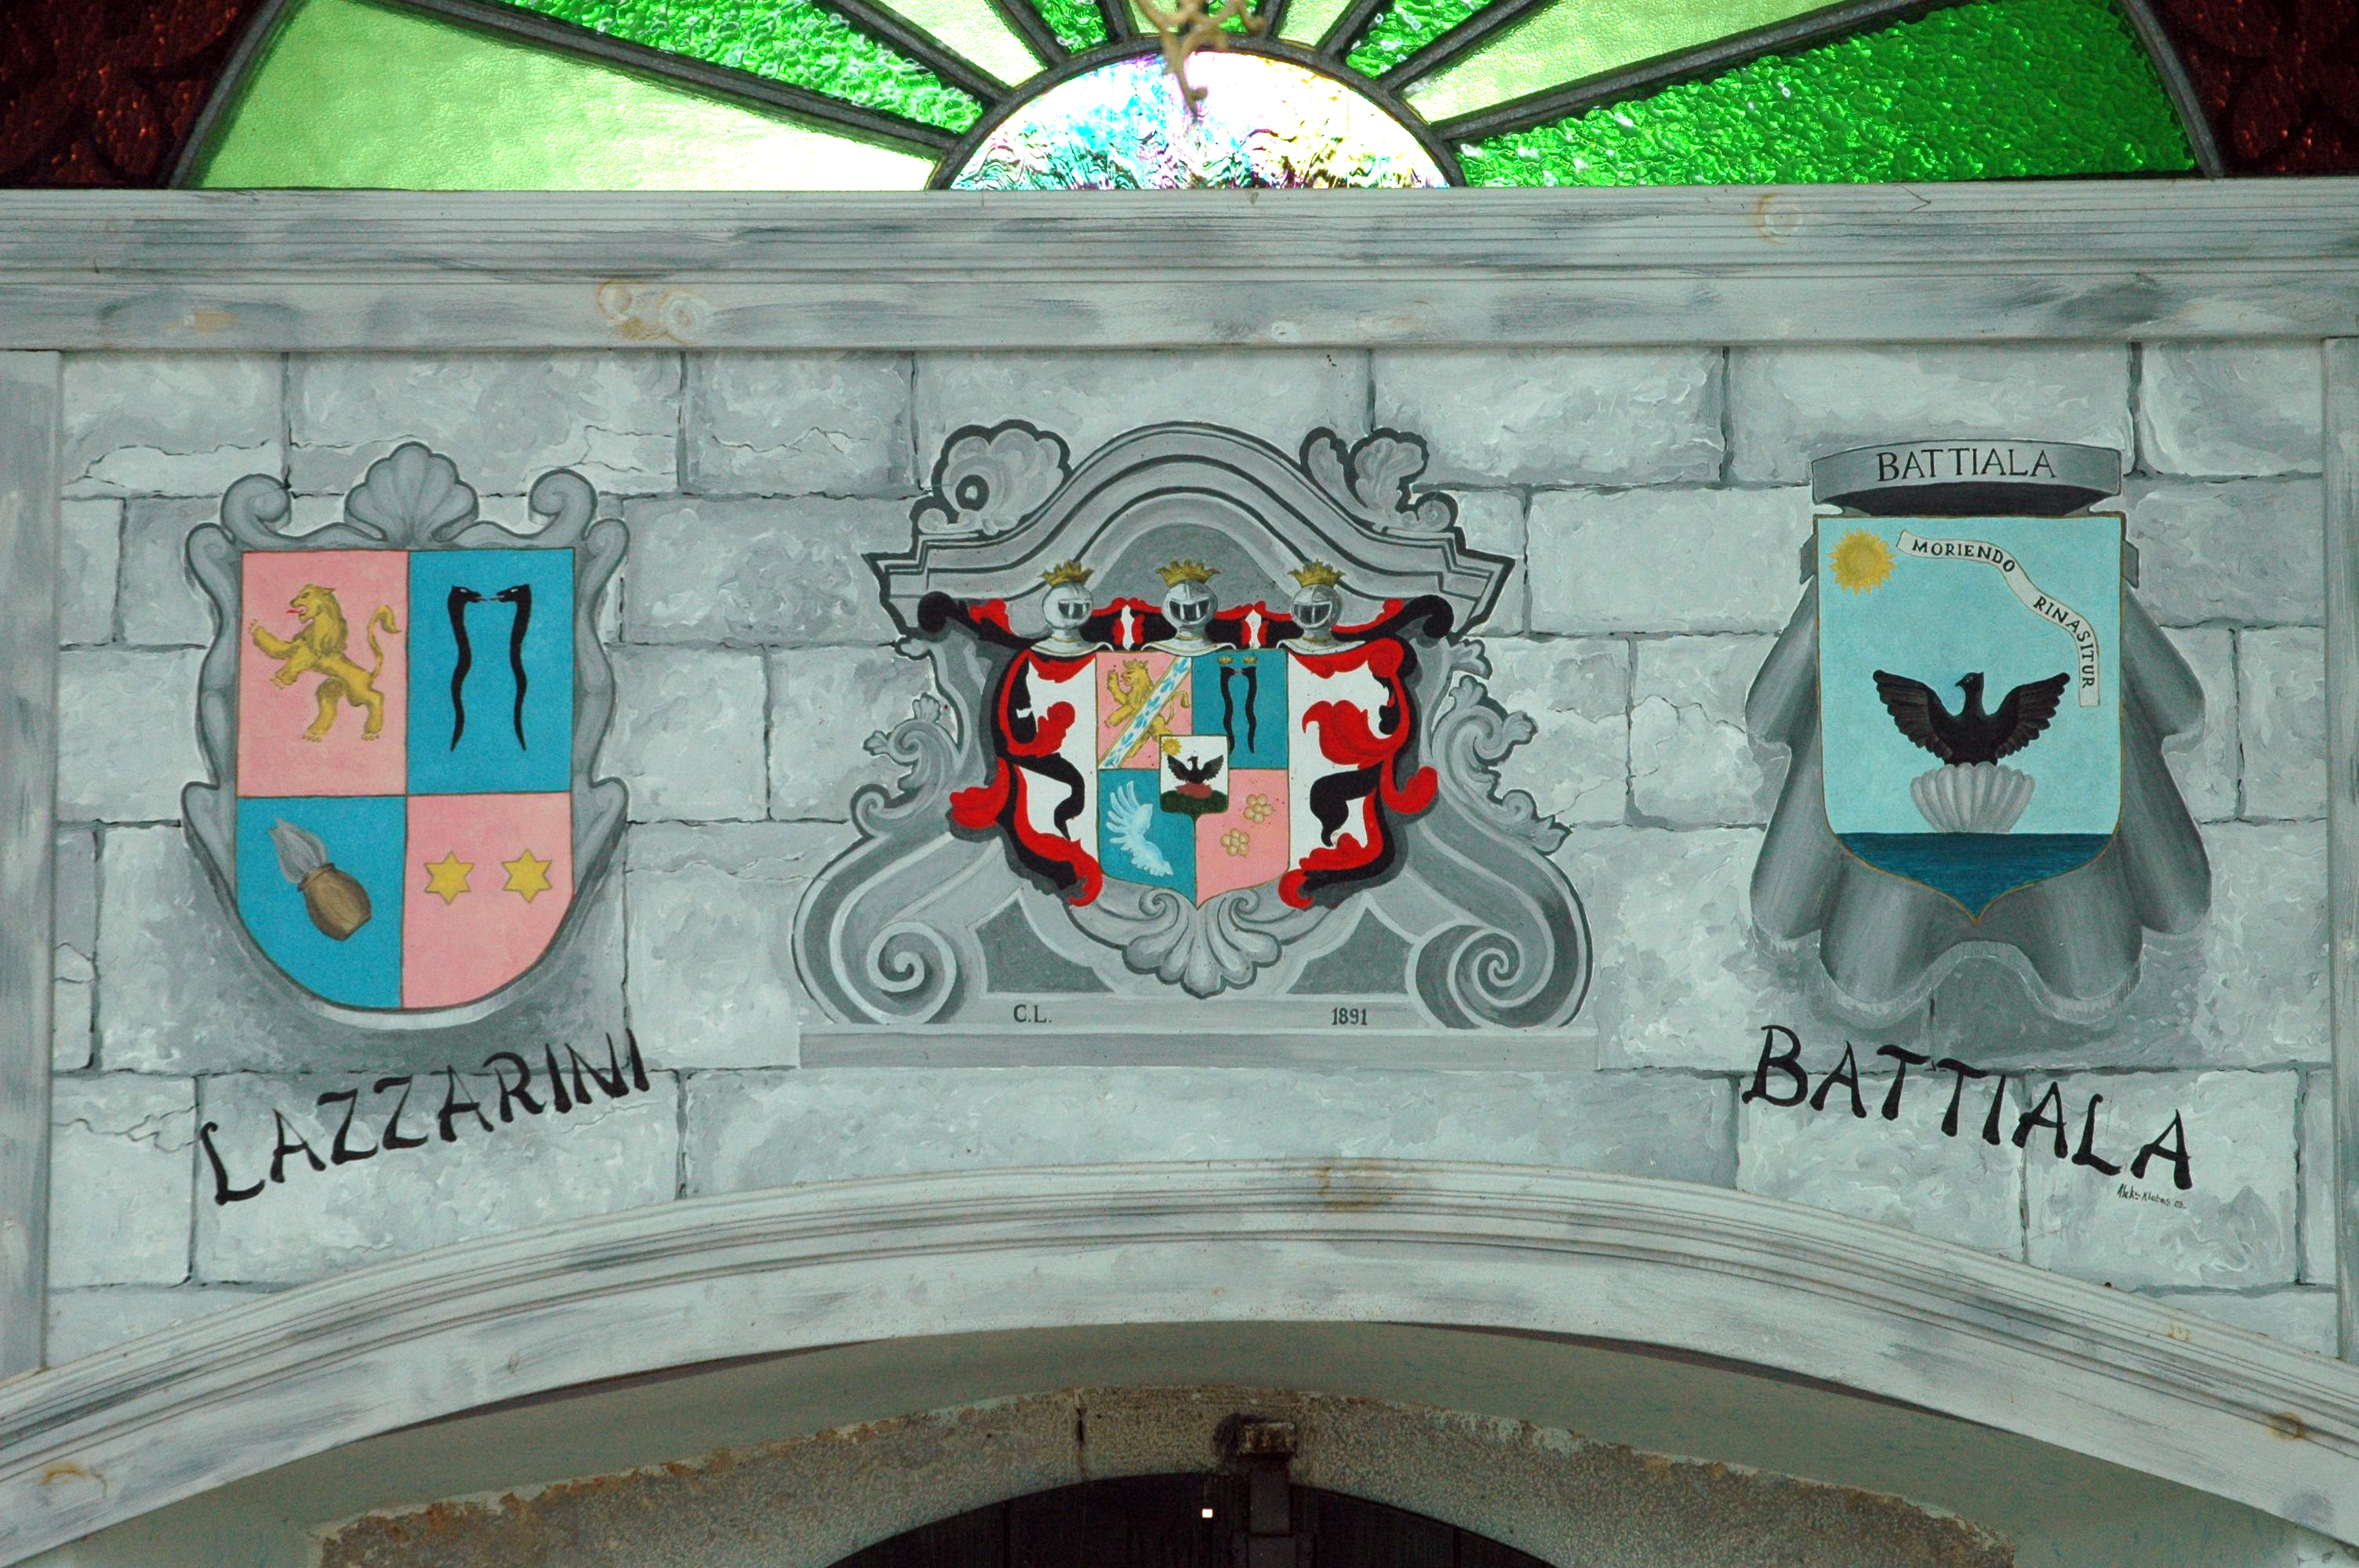 Family Lazzarini-Battiala crests